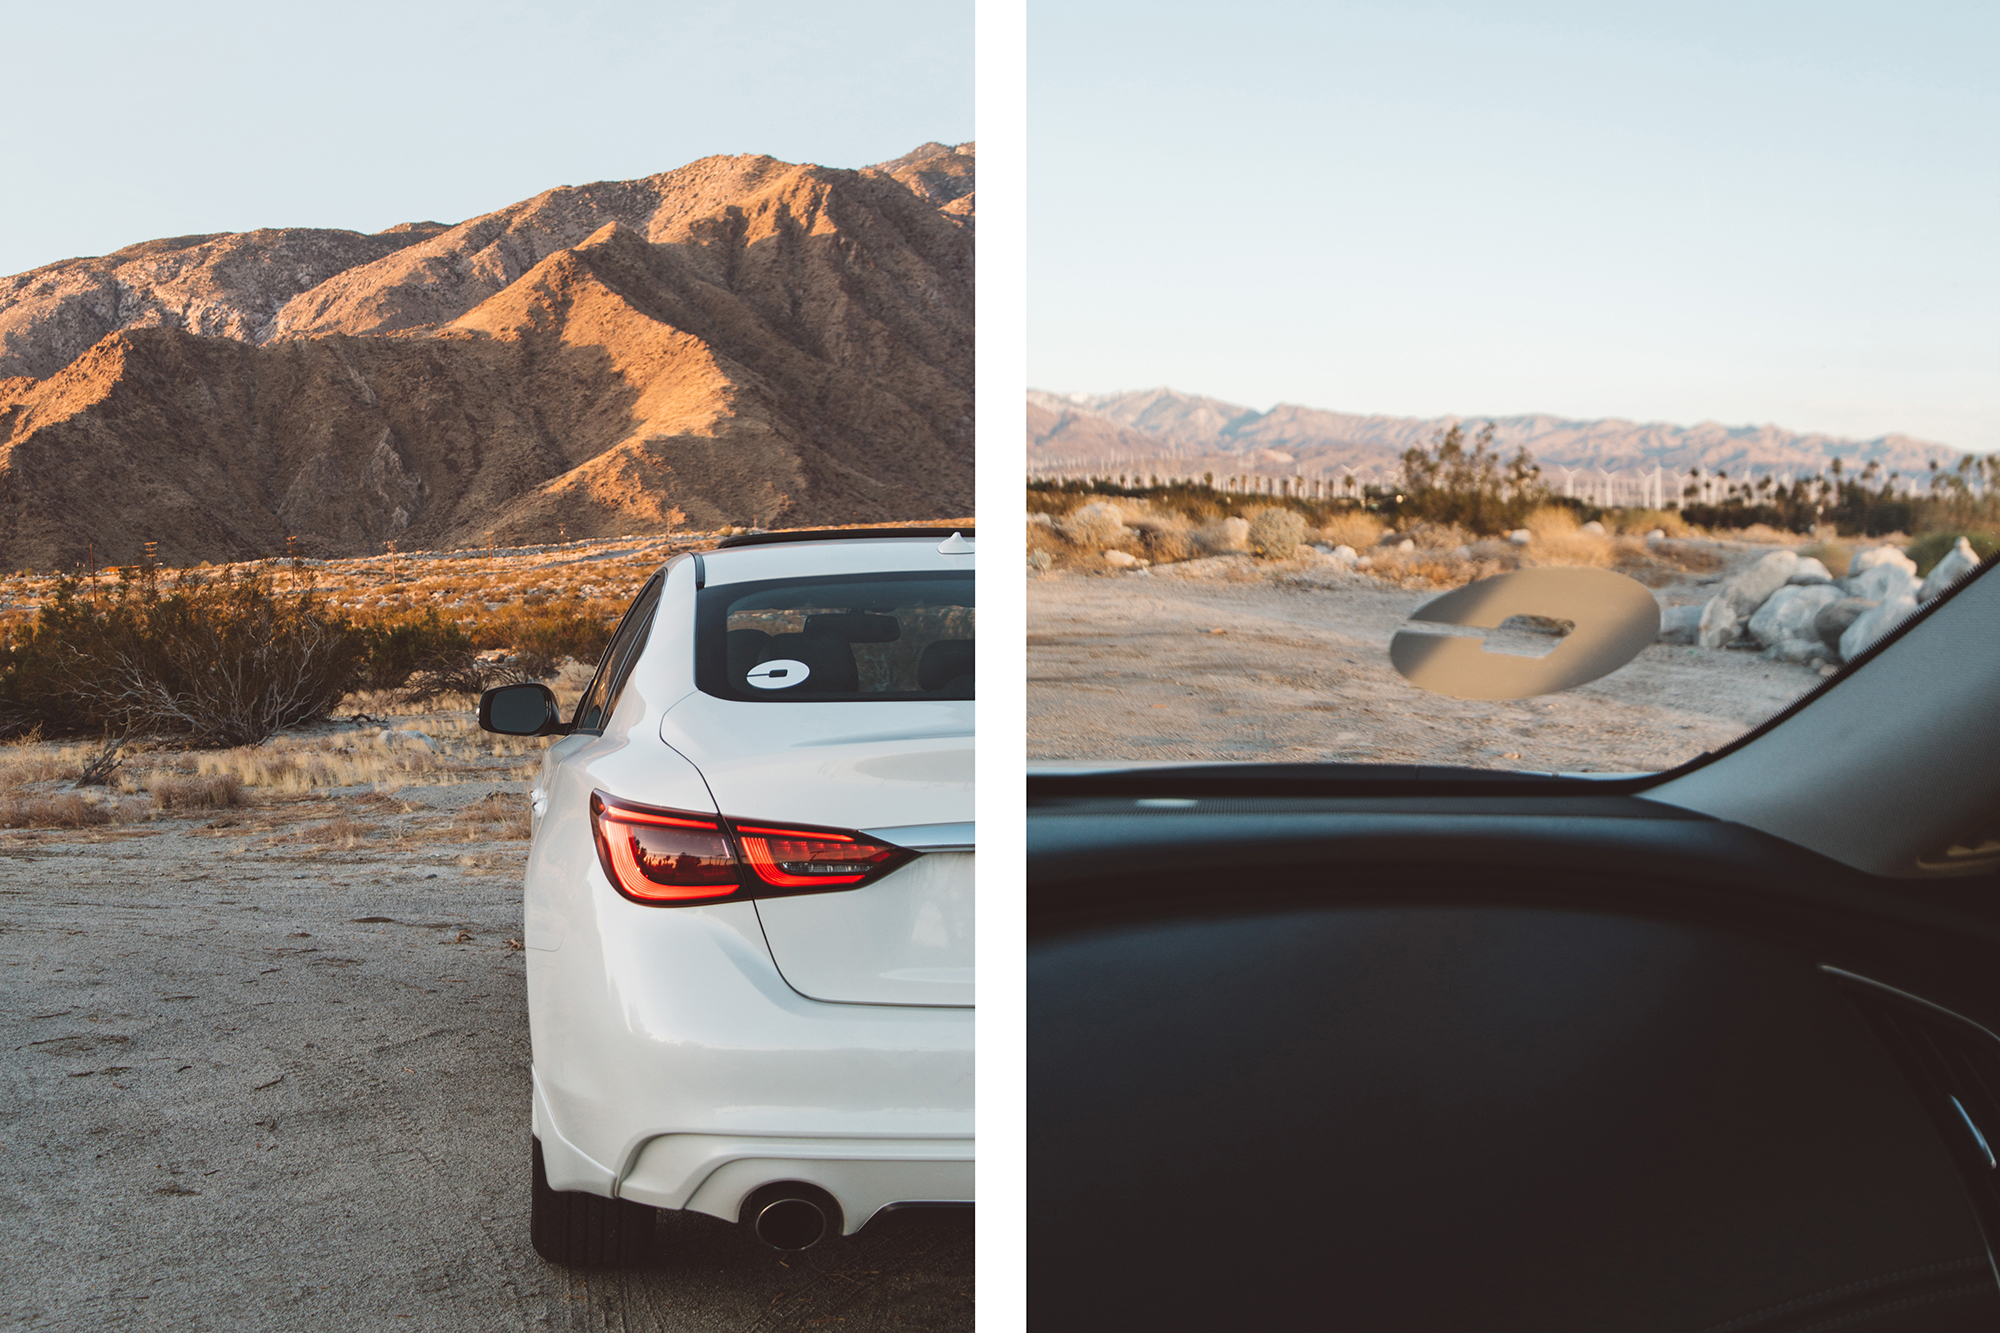 #WhereTo With Uber: 24 Hours In Palm Springs, CA